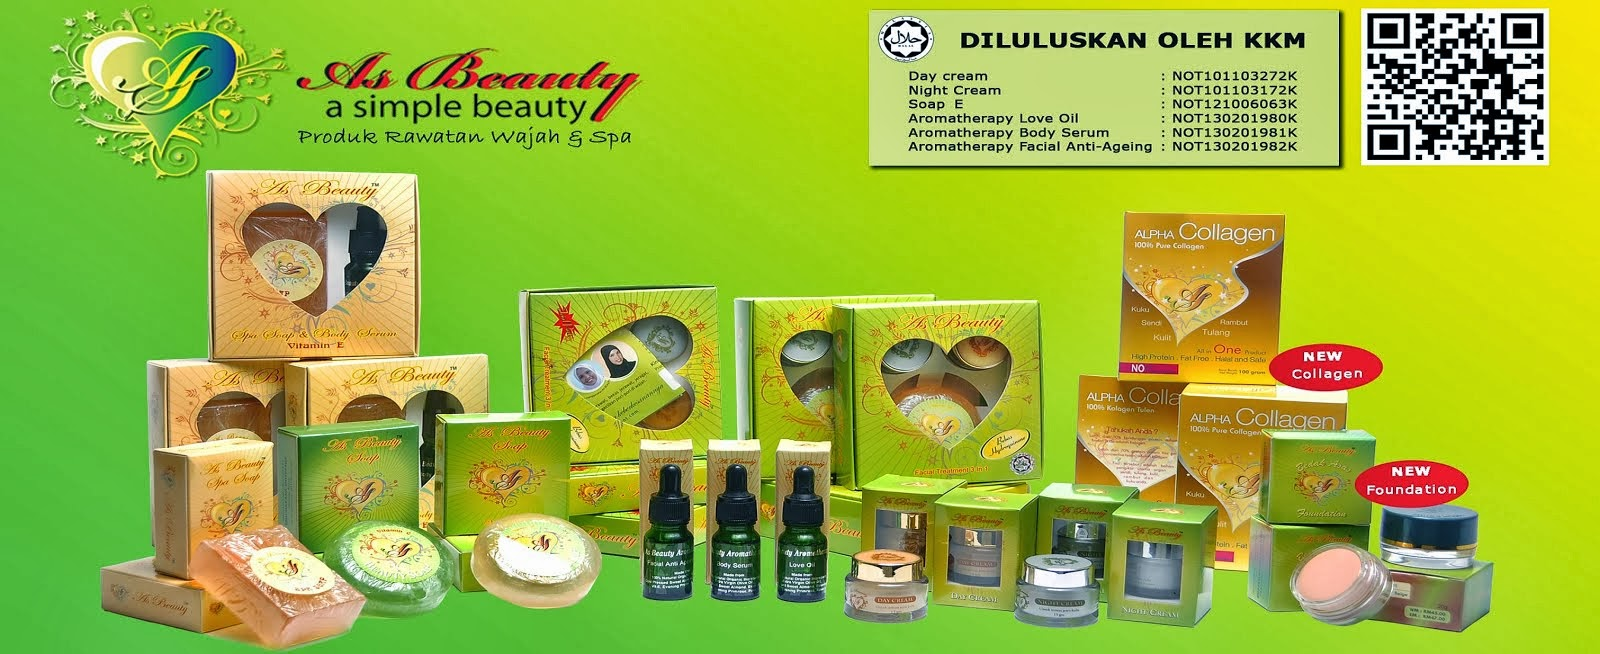 AS BEAUTY - Halal certified by JAKIM & approved by Ministry of Health